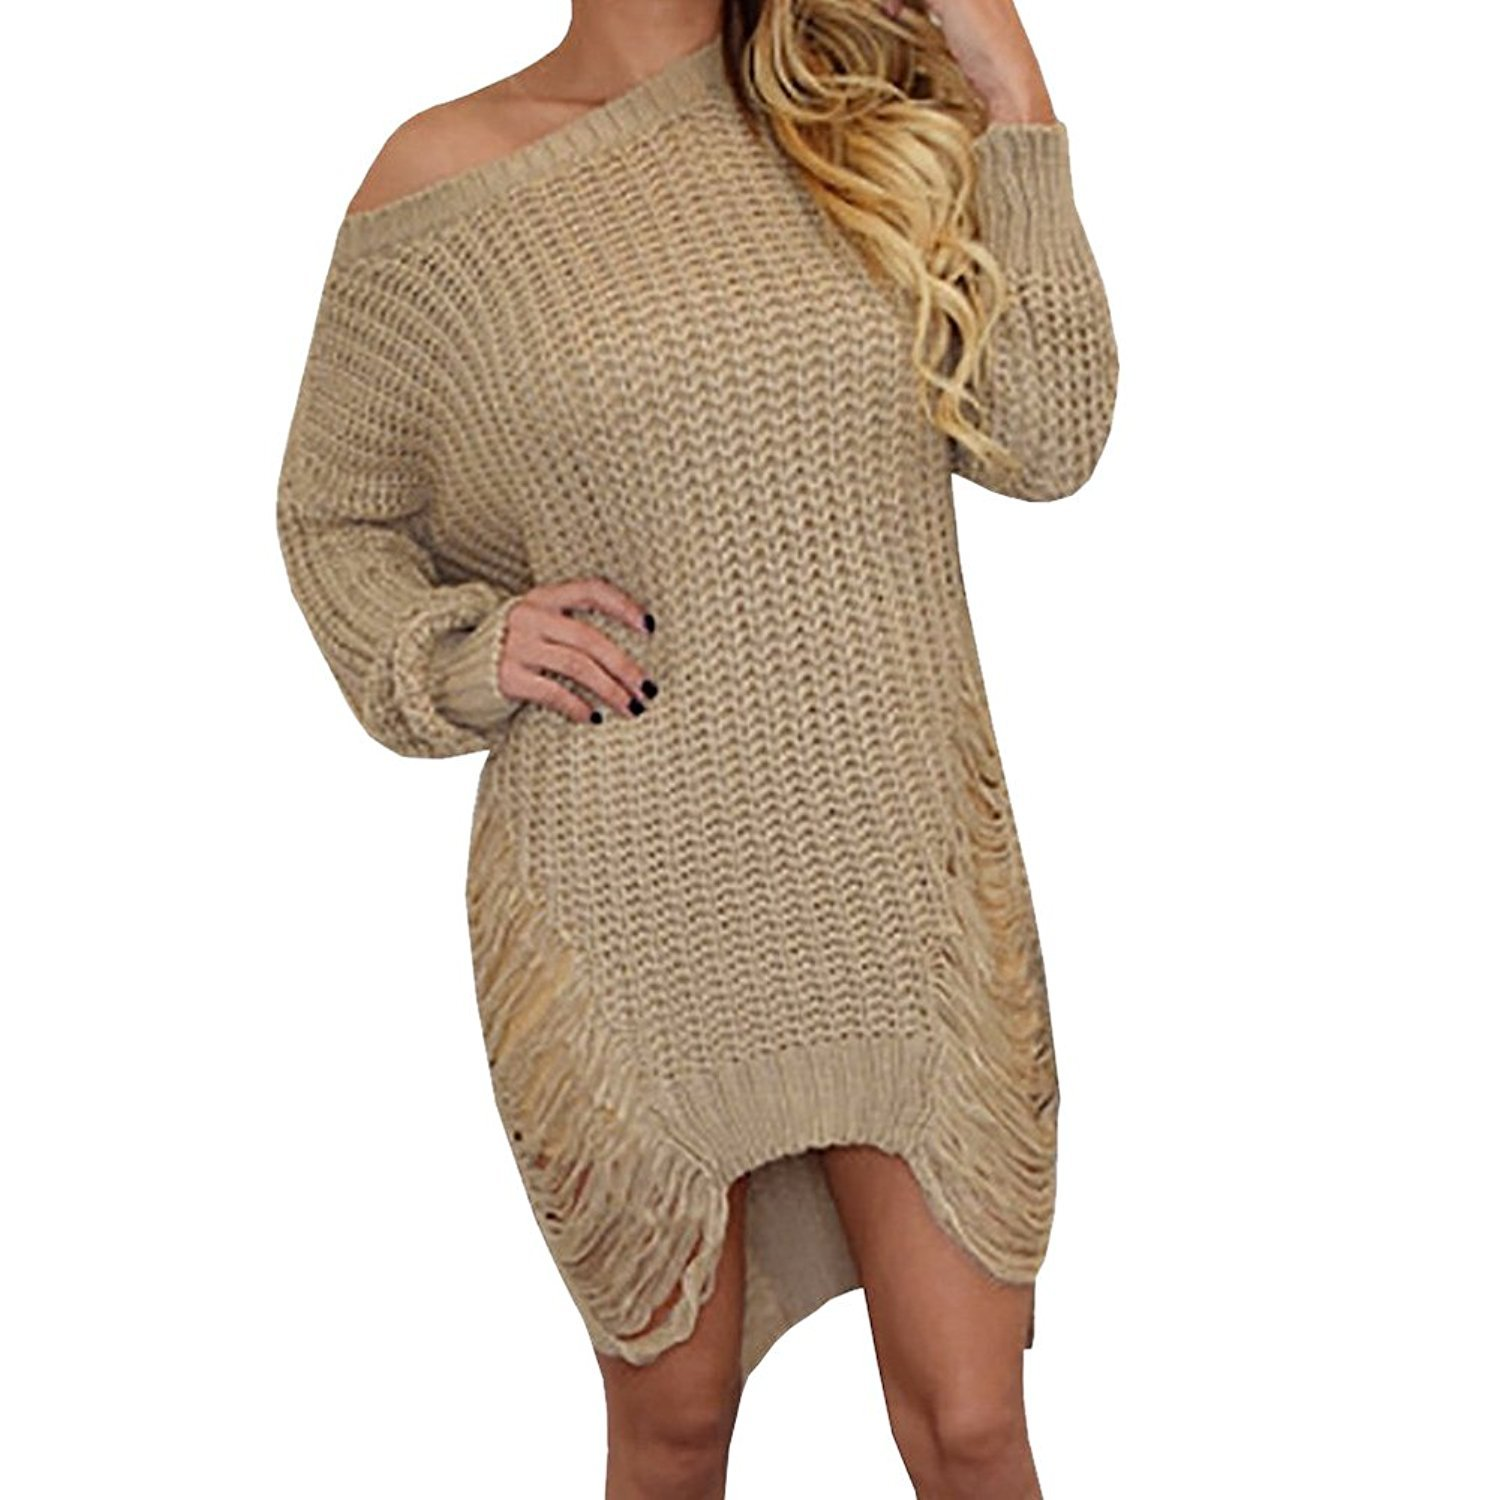 Women Sexy Ripped Hole Knitted Sweater Dress Long Sleeve Casual Pullover  Tops Outwear at Amazon Women s Clothing store  6fd6e345b